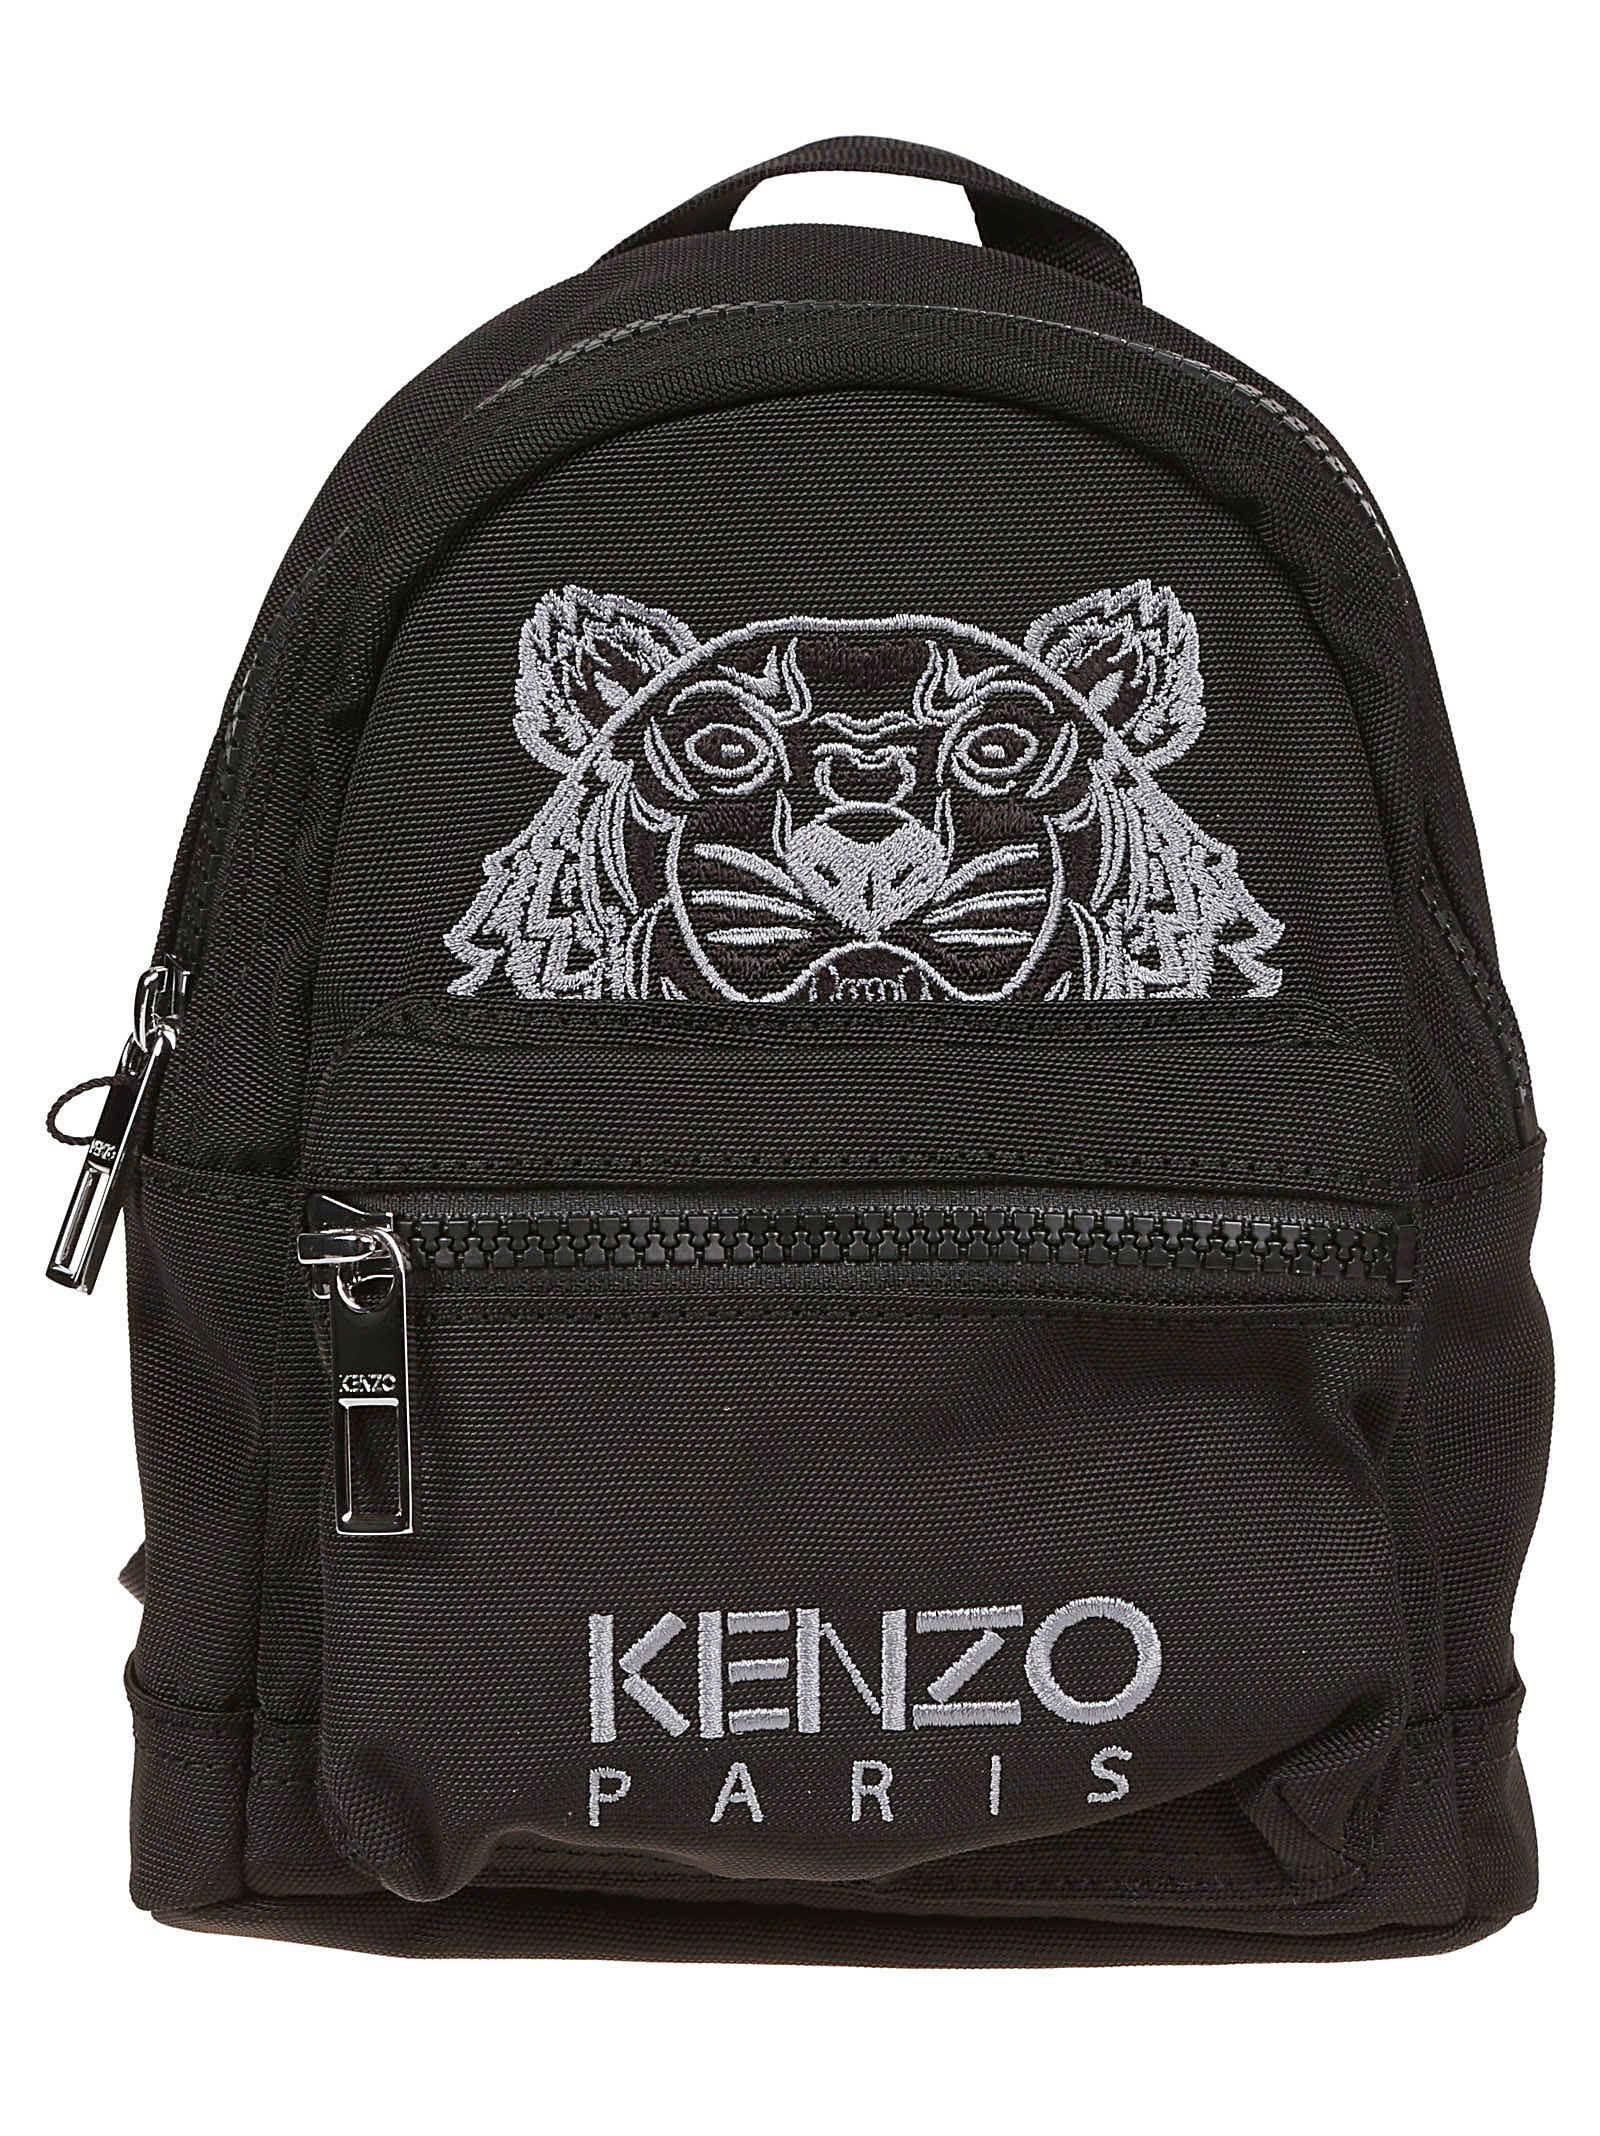 6ef93787c42 Kenzo Embroidered Tiger Backpack in 2019